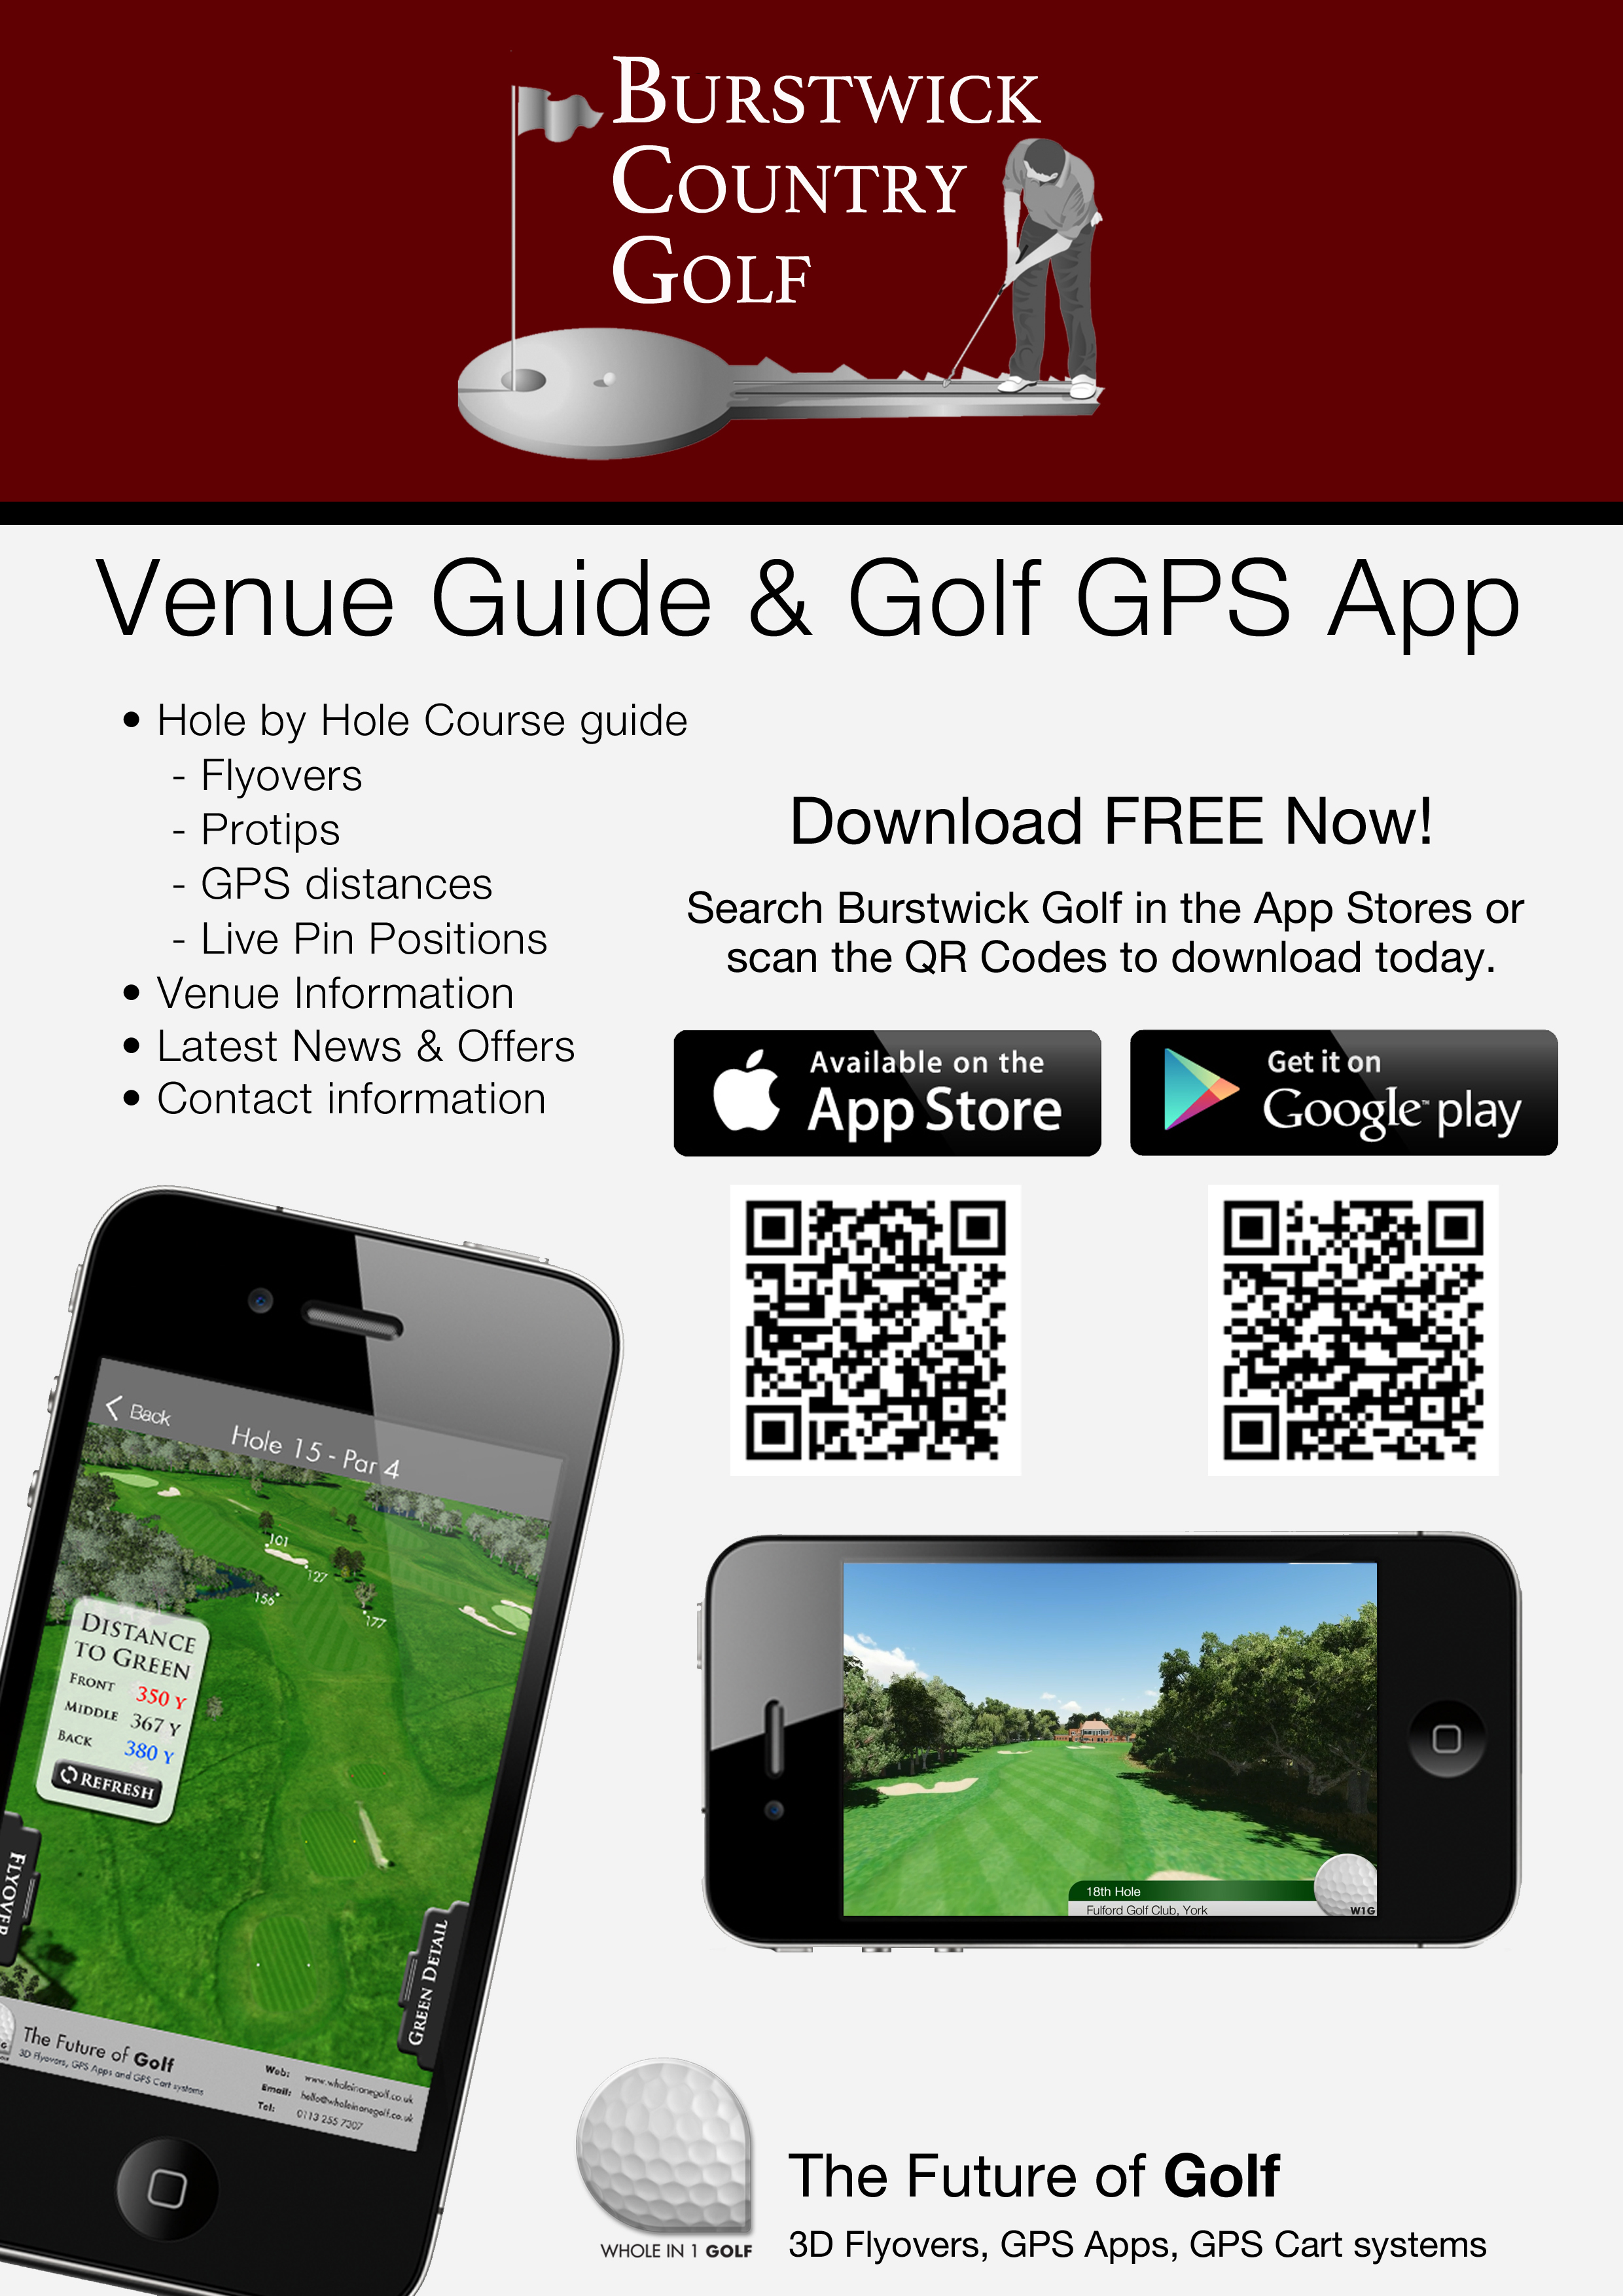 Golf App with 3D Flyovers